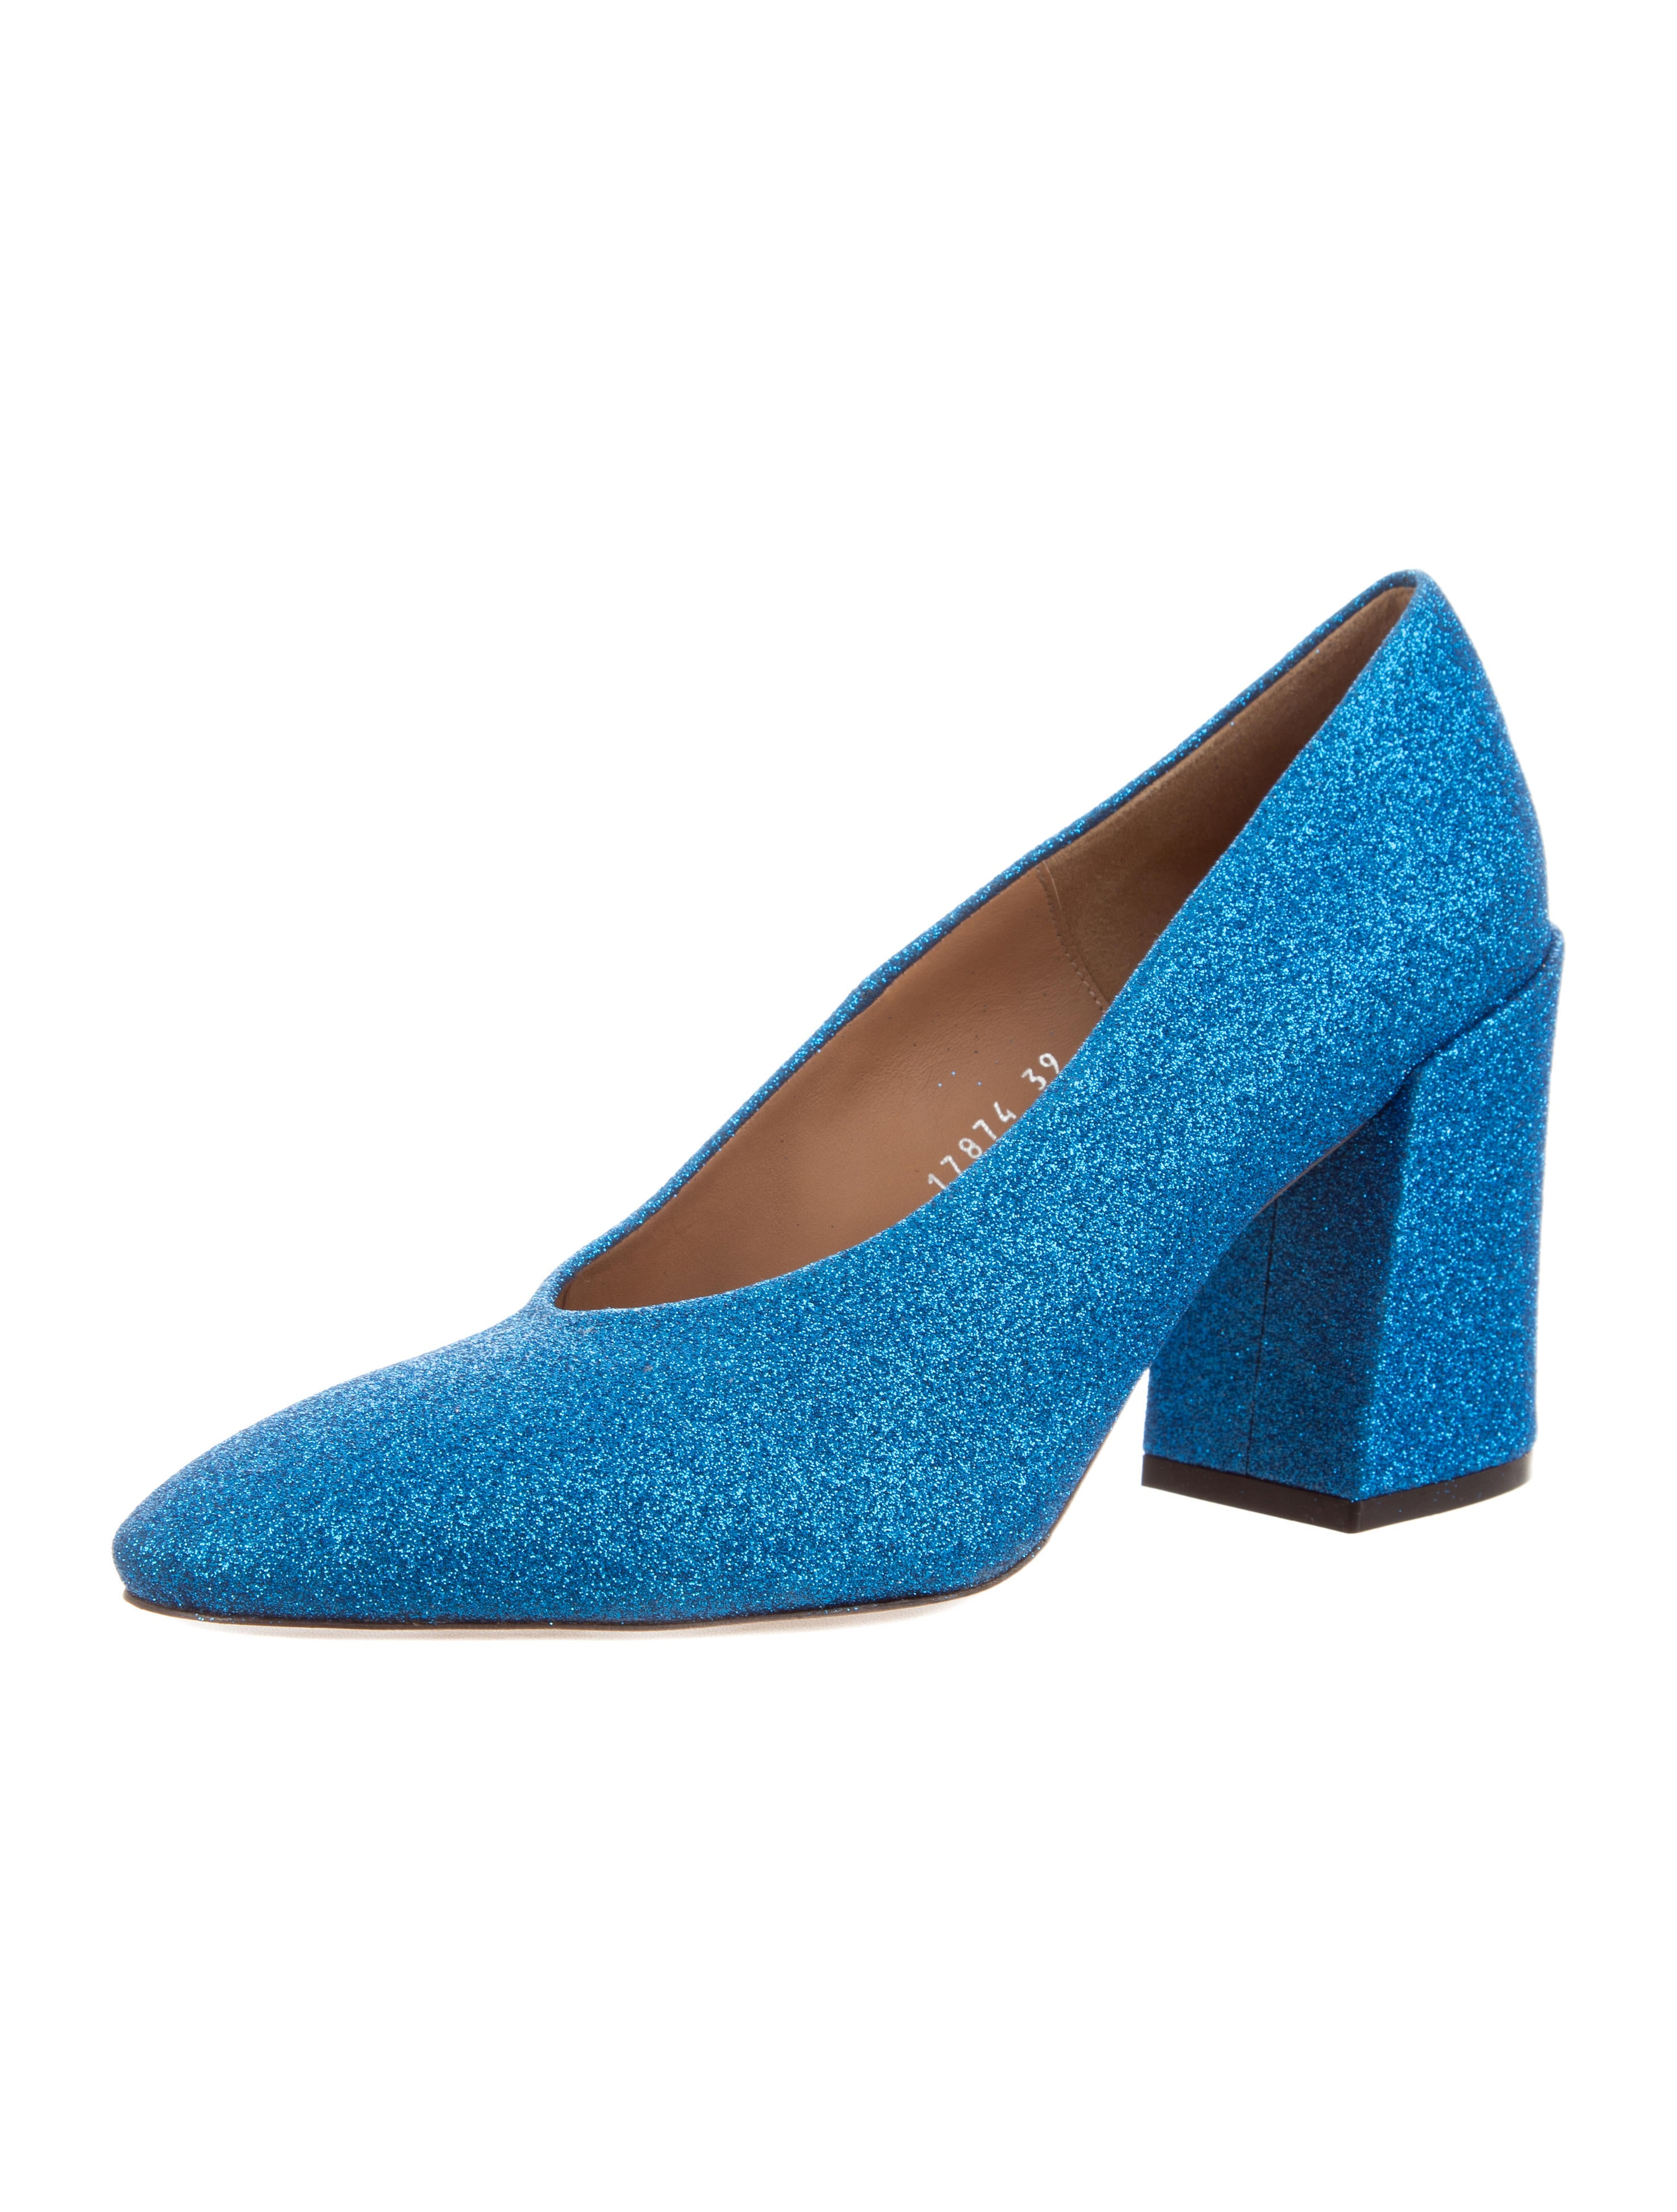 Dries Van Noten Glitter Round-Toe Pumps w/ Tags cheap sale pay with visa footlocker finishline online discount factory outlet cheap prices reliable 42a7VqIyM